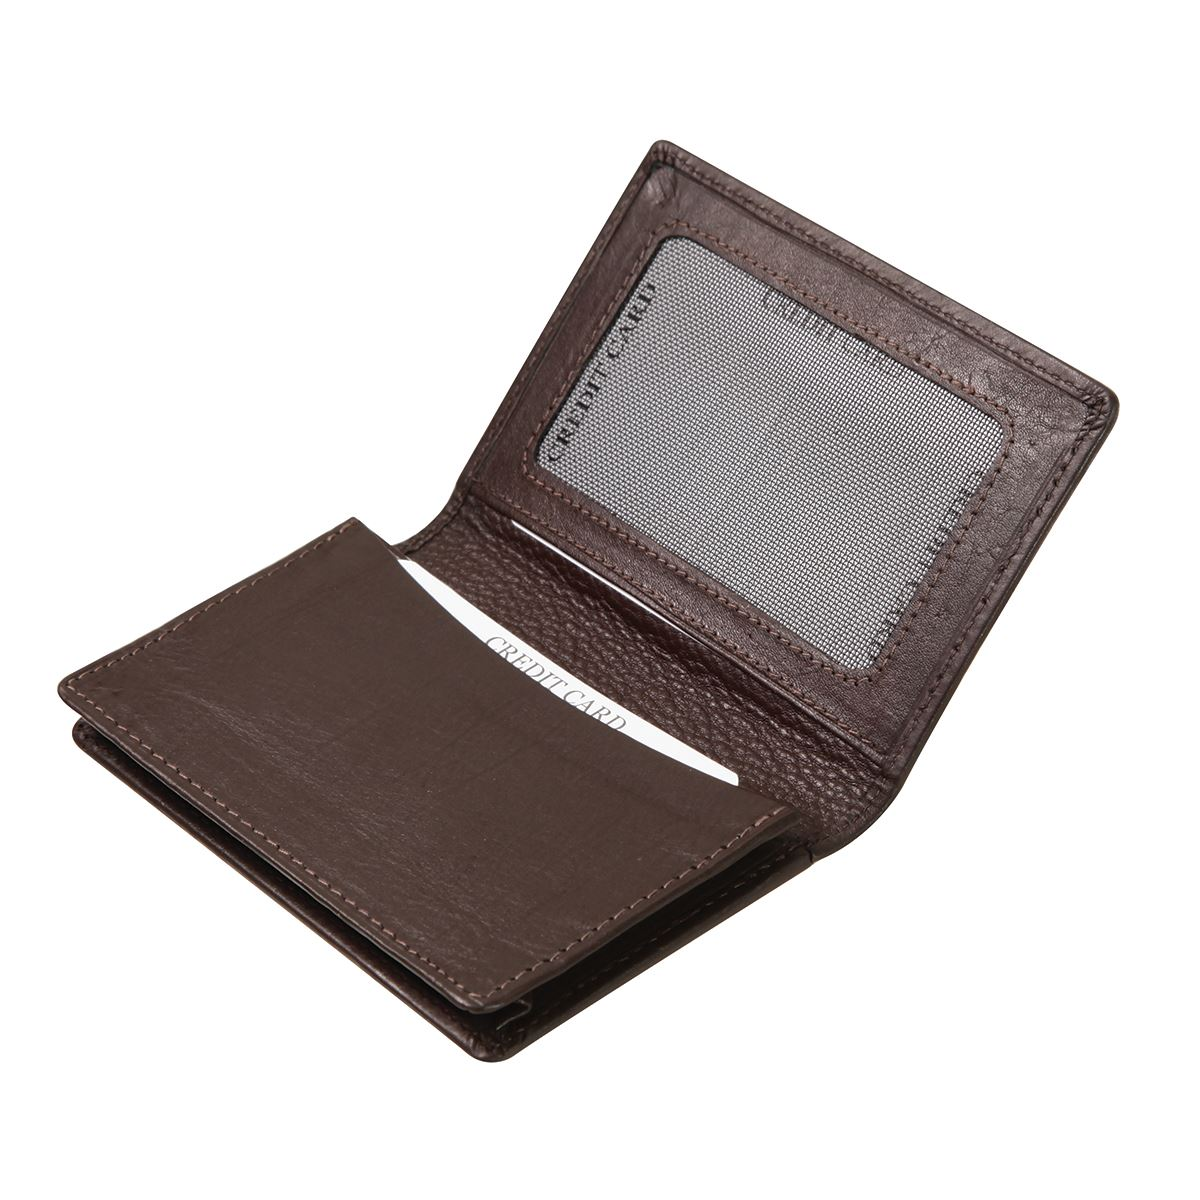 NAPPA LEATHER BUSINESS CARD HOLDER 16.716.341 | SHUGON BAGS ...